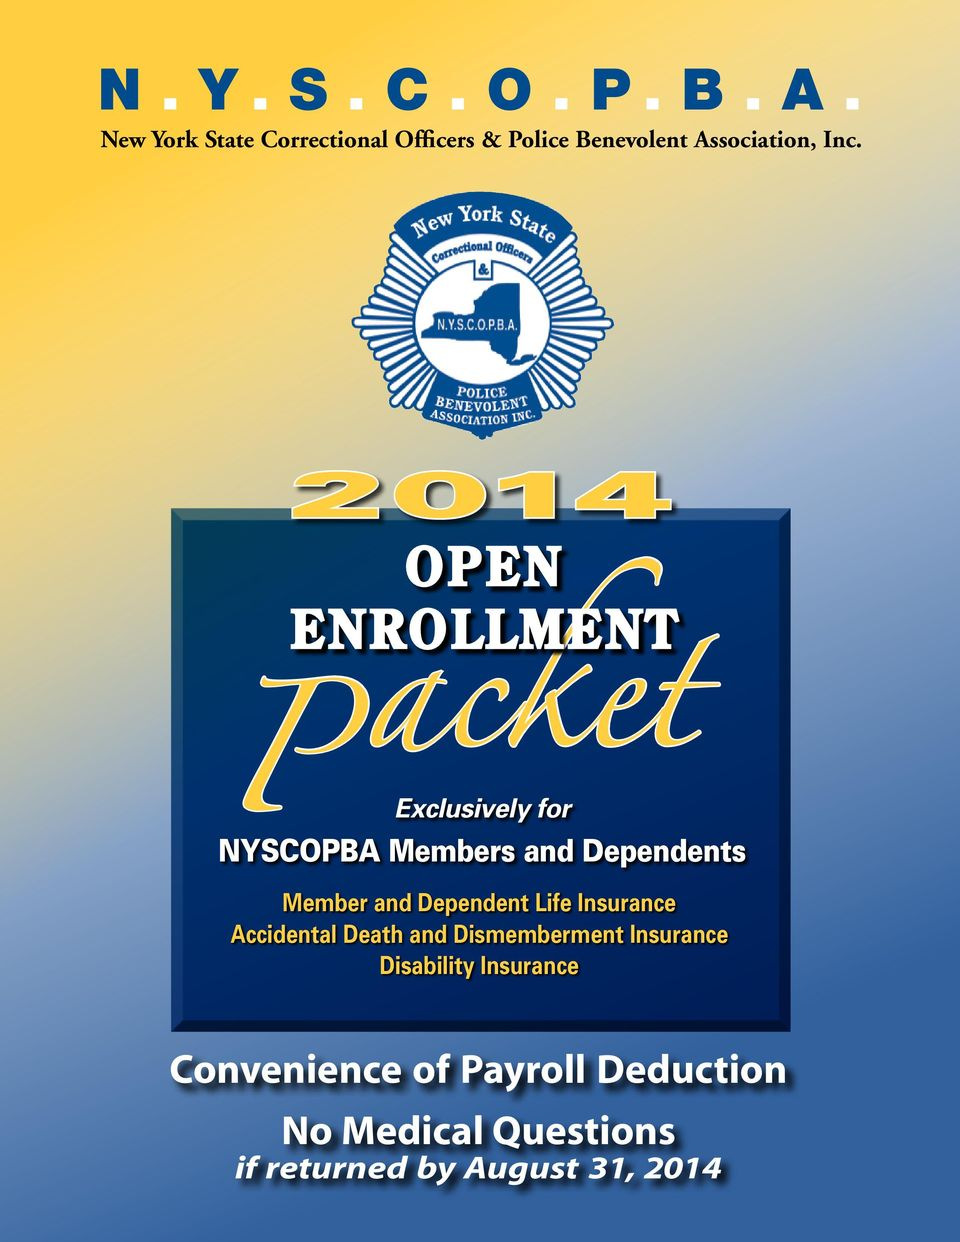 P 2014 OPEN ENROLLMENT acket Exclusively for NYSCOPBA Members and Dependents Member and